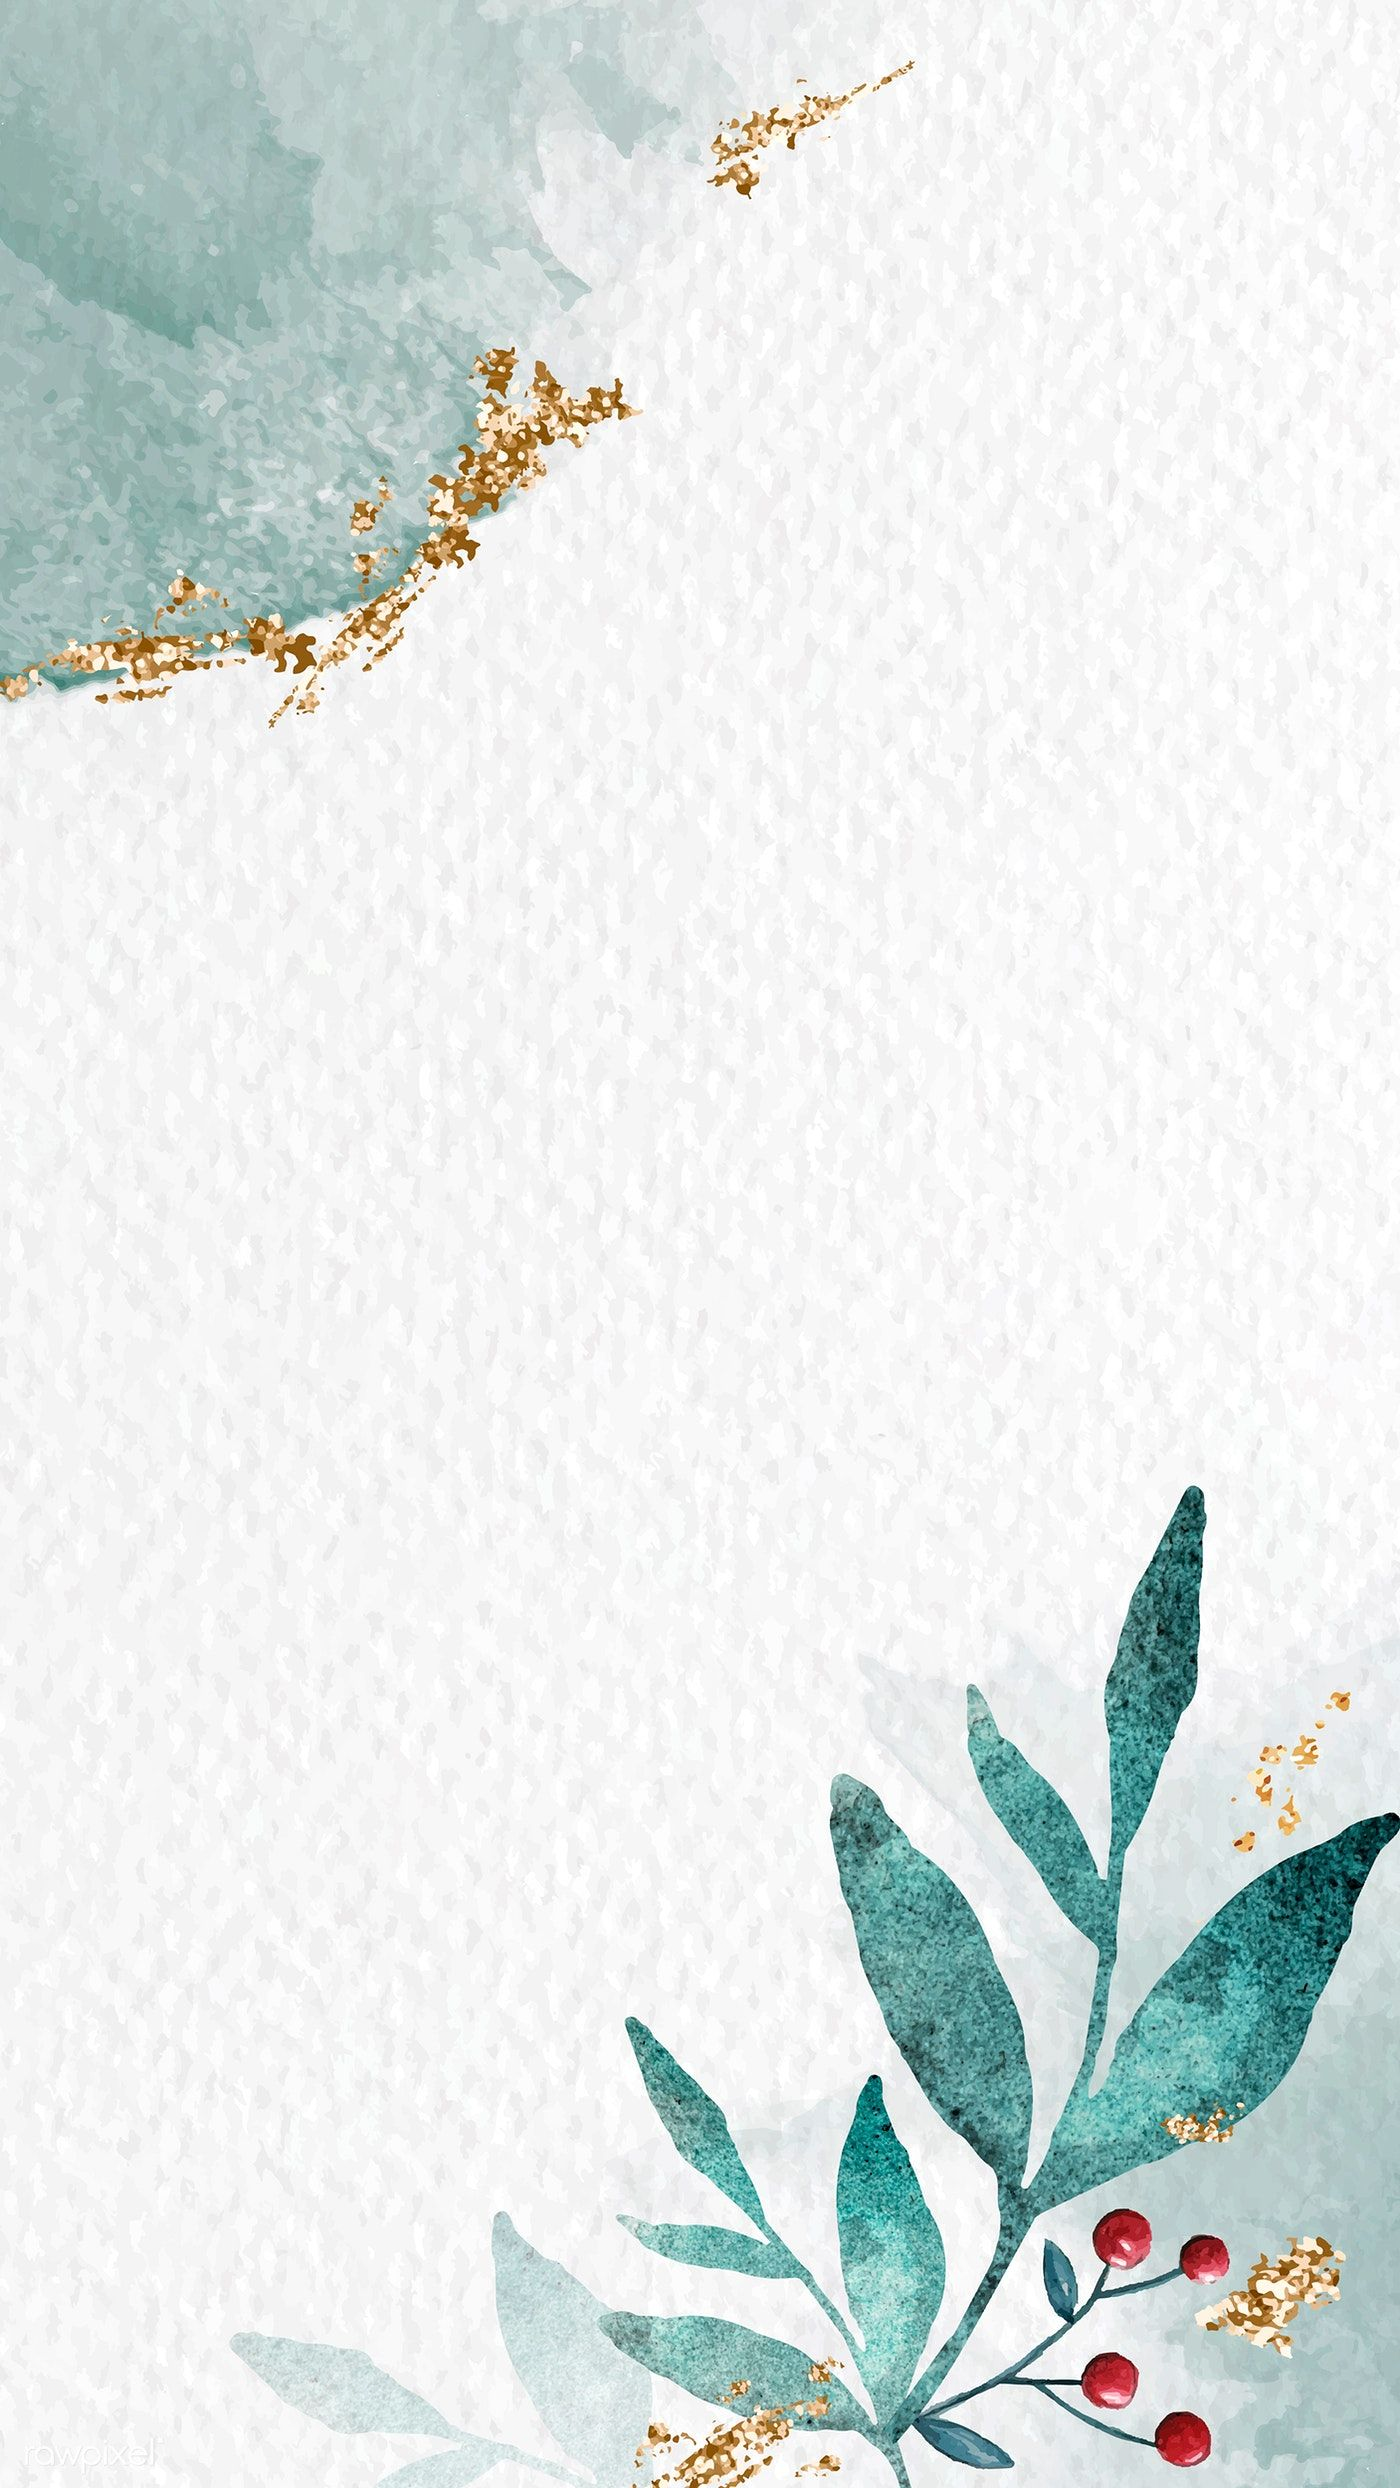 Download premium vector of Shimmering watercolor leafy frame mobile phone wallpaper vector by Adjima about watercolor mobile phone wallpaper, christmas, frame vector illustration, holly, and Christmas watercolor 1229193